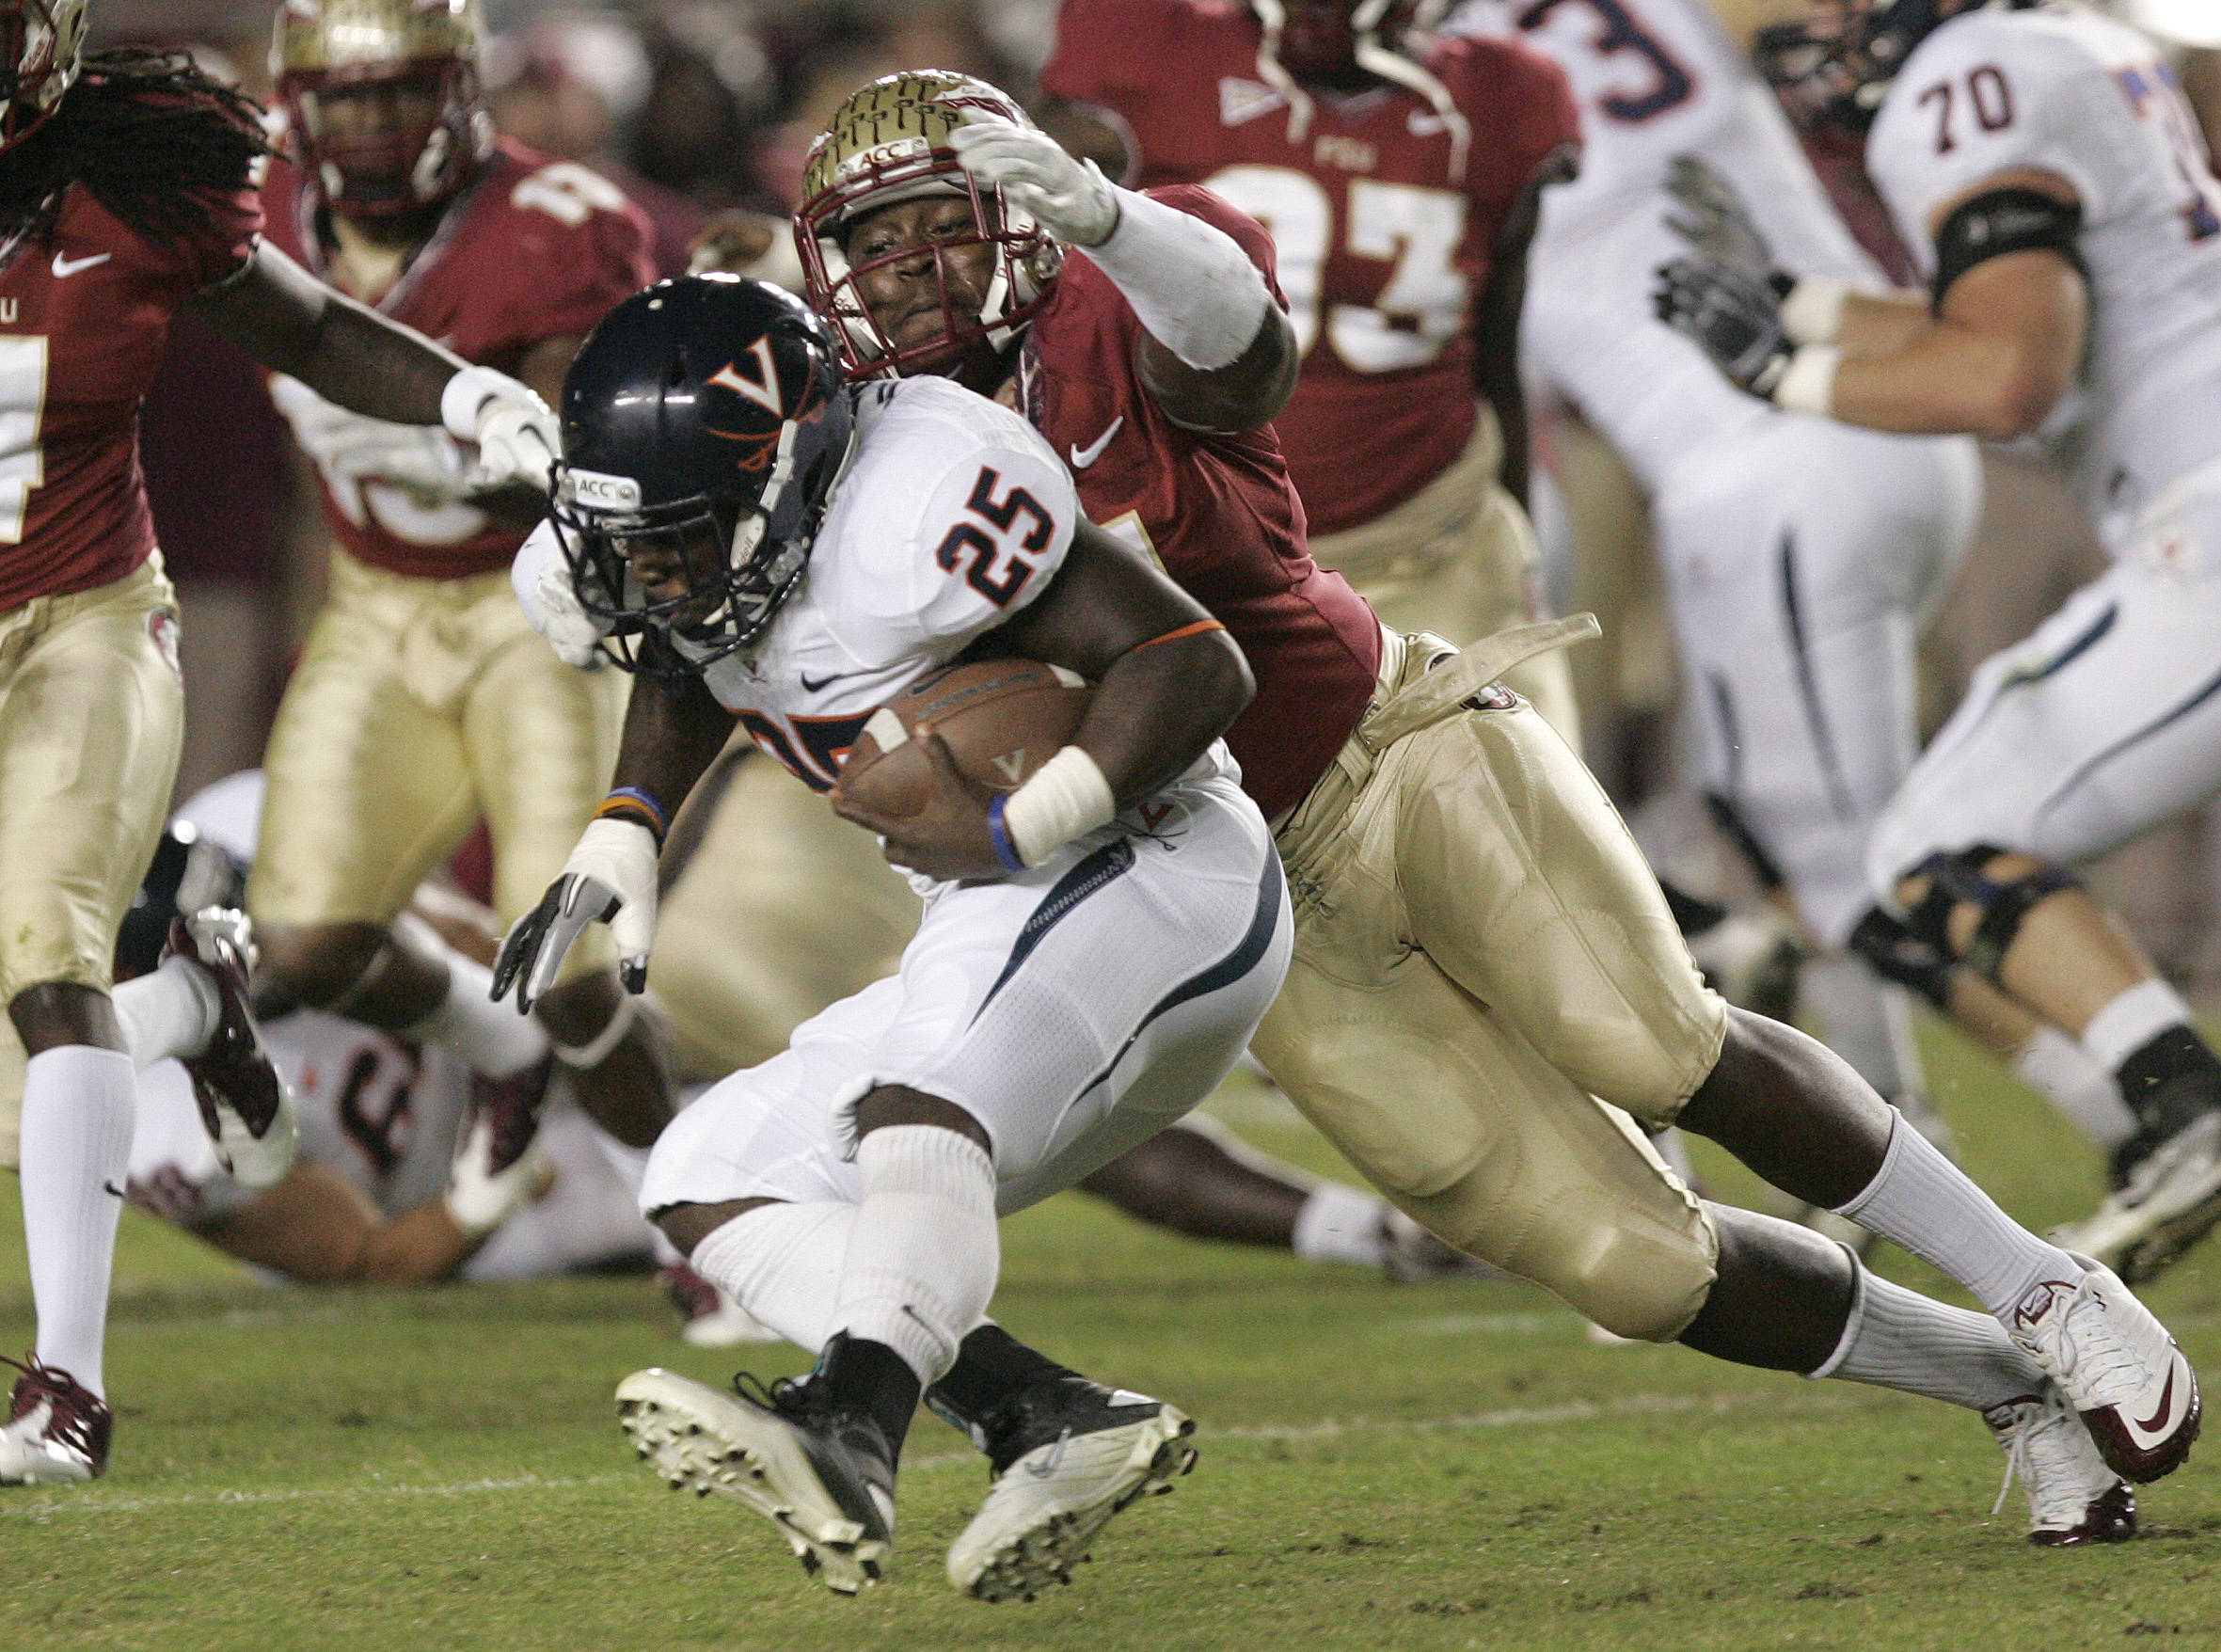 Florida State's Vince Williams tackles Virginia's Kevin Parks (25).(AP Photo/Steve Cannon)